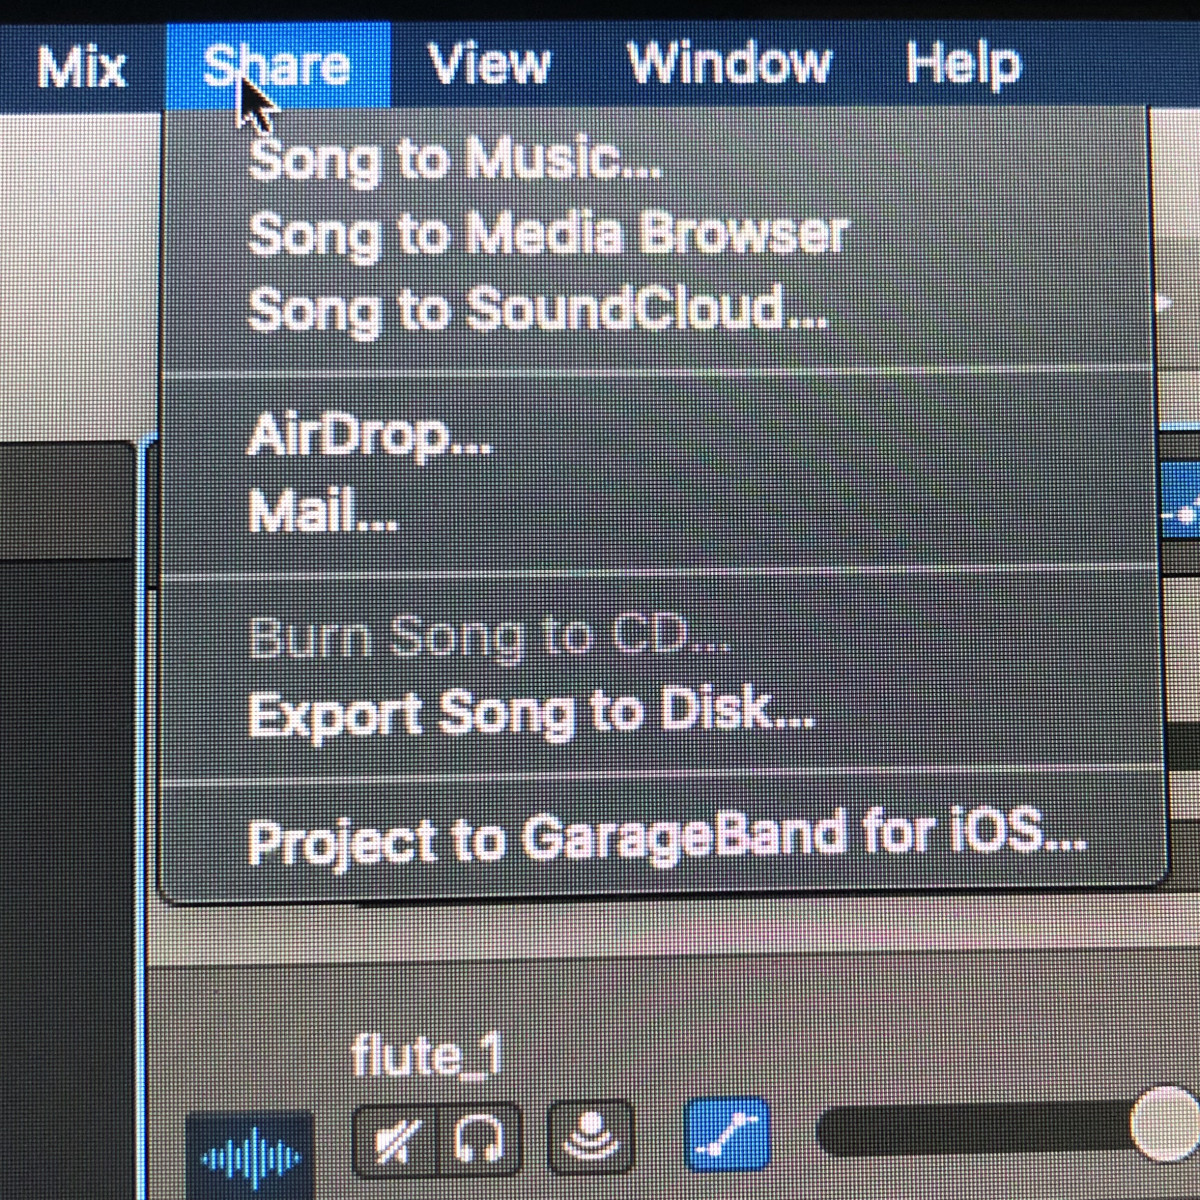 Share menu:  Export Song to Disk